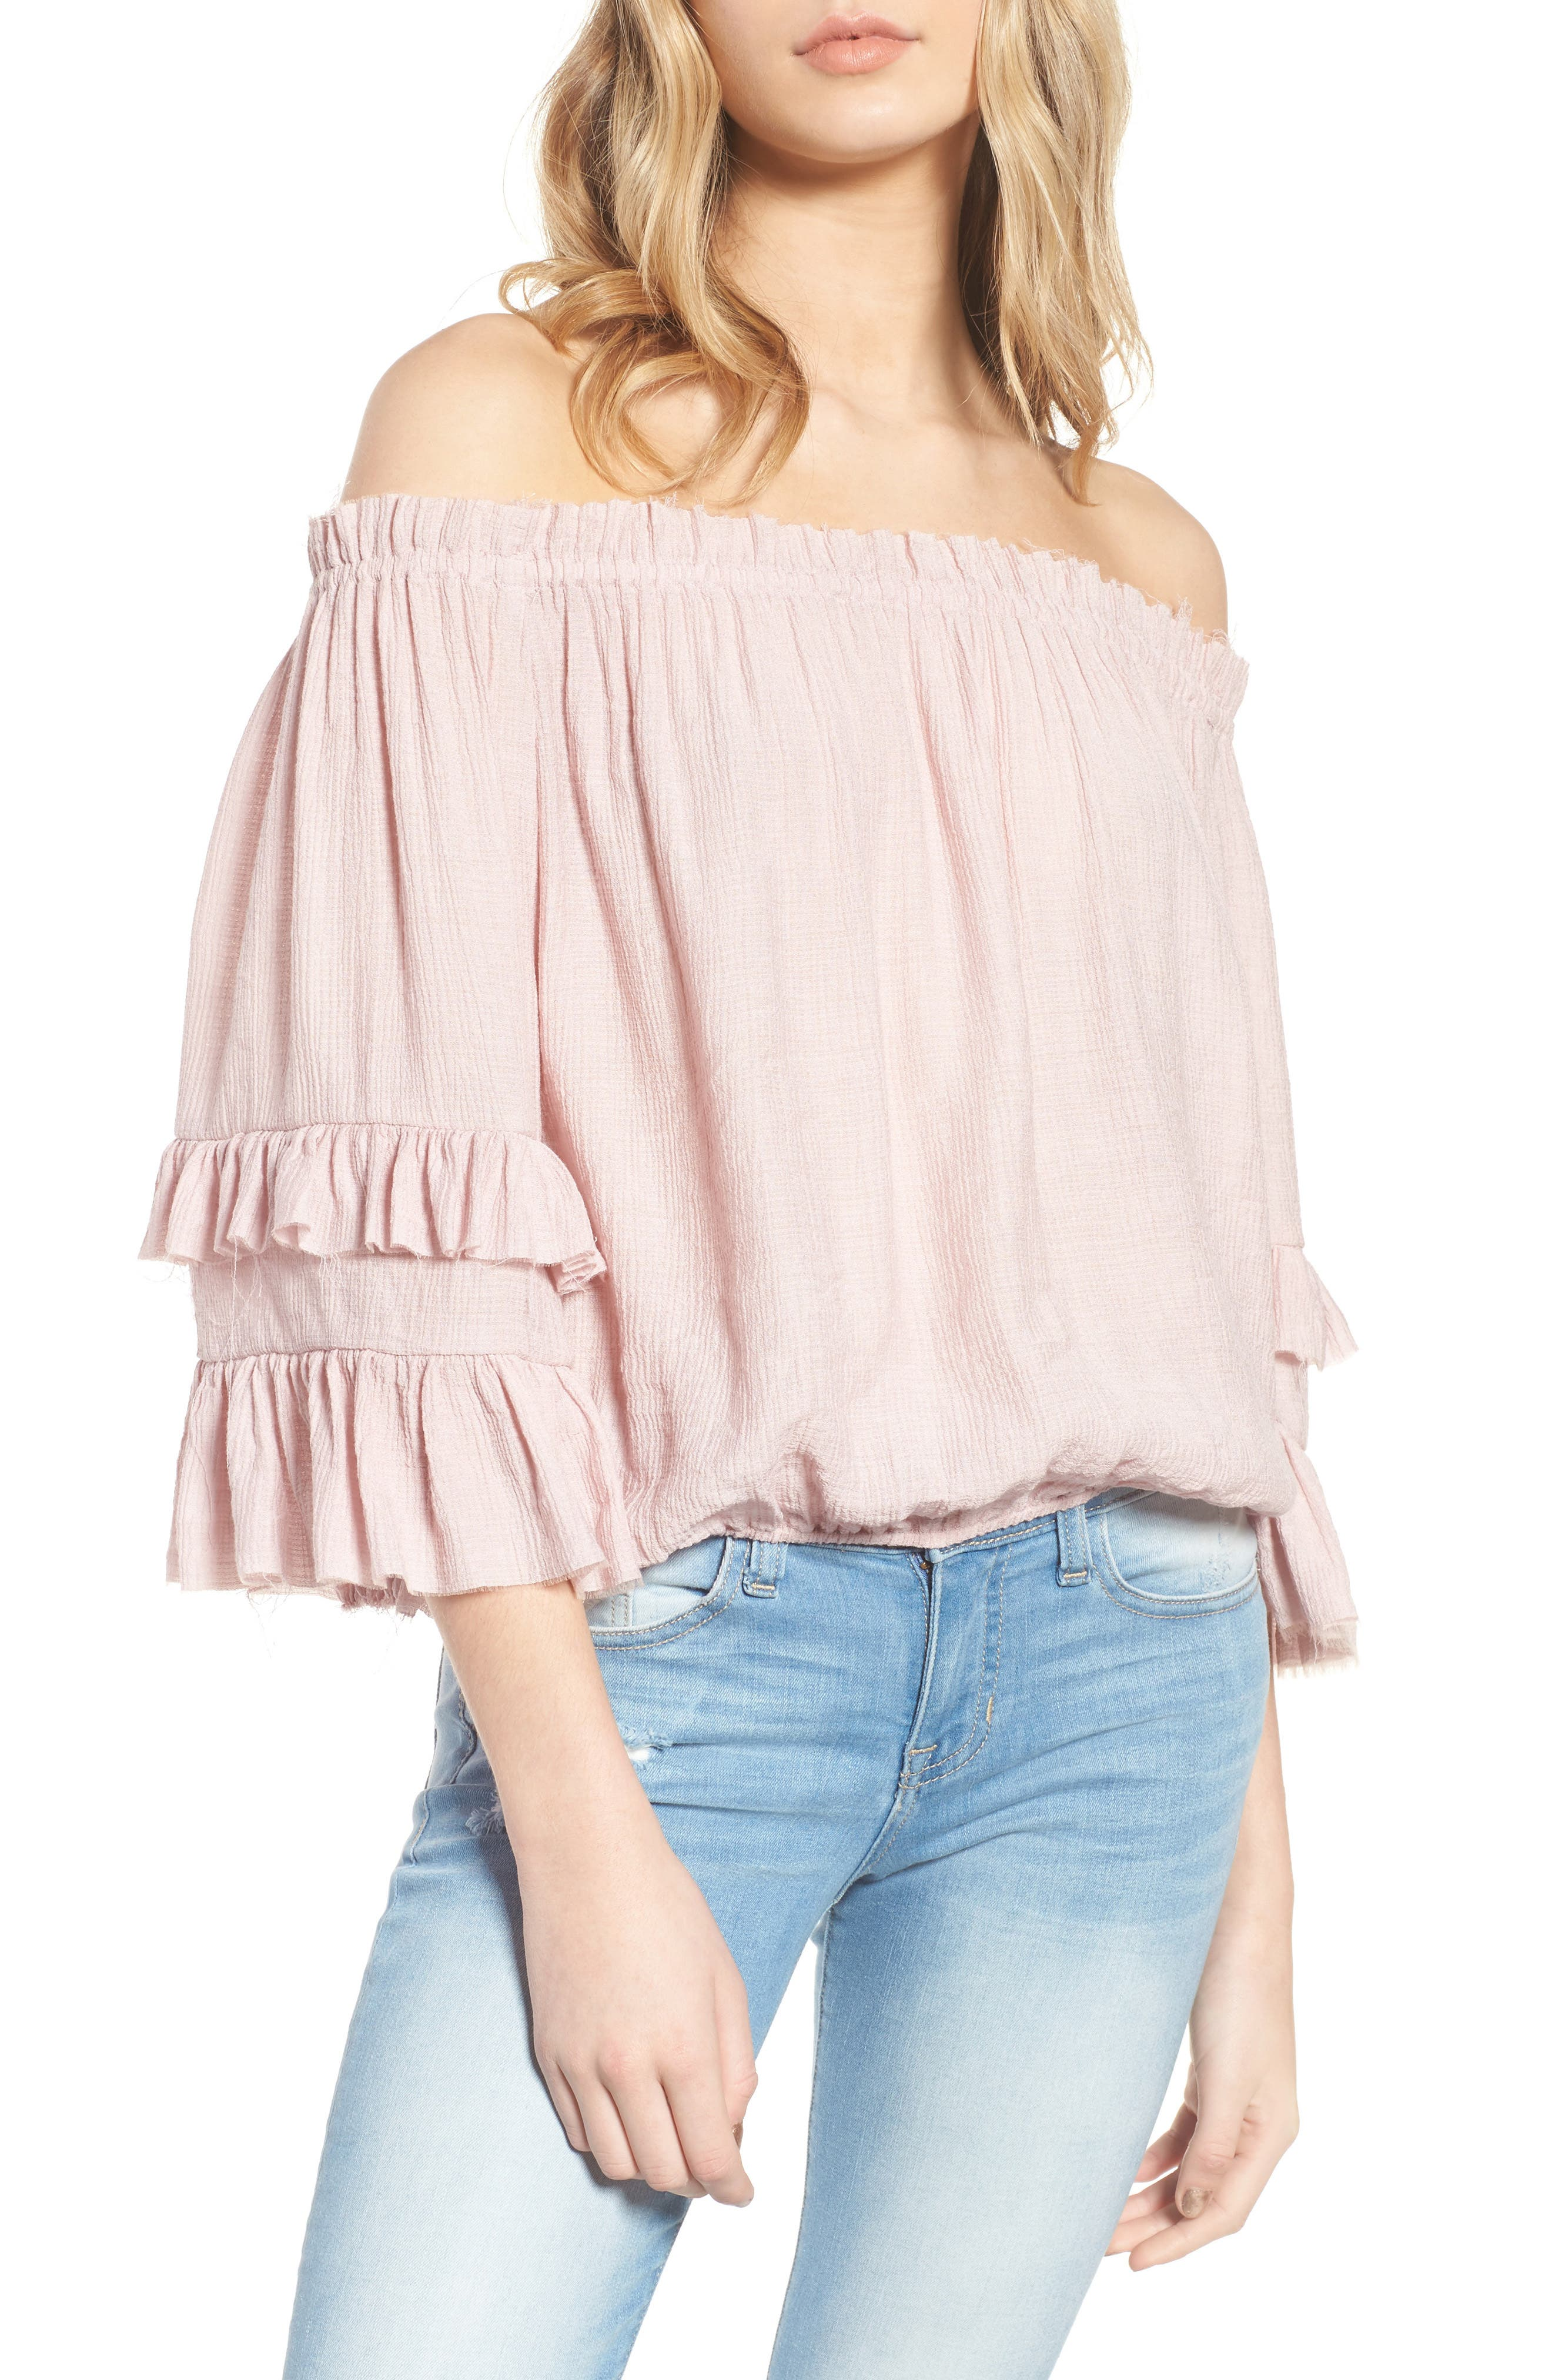 KNOW ONE CARES,                             Tiered Off the Shoulder Top,                             Main thumbnail 1, color,                             685